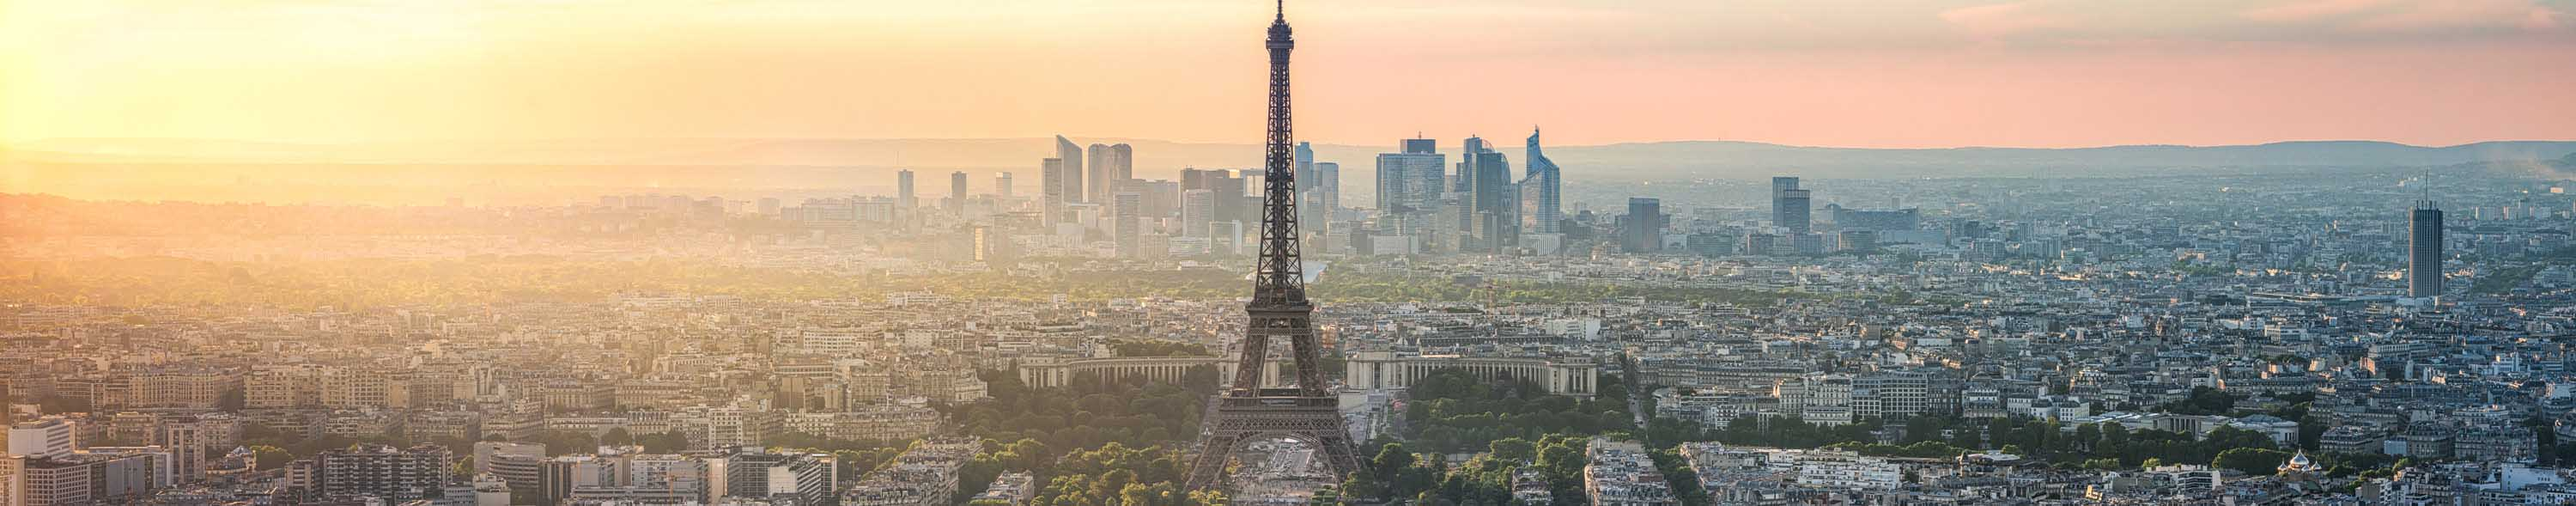 conseil en gestion de patrimoine PARIS;conseiller gestion patrimoine PARIS;lmnp PARIS;PARIS;pinel PARIS;prix immobilier PARIS;ou investir aPARIS;residence etudiante lmnp PARIS; residence senior lmnp PARIS; investissement immobilier locatif PARIS; programme immobilier neuf PARIS;appartement neuf PARIS